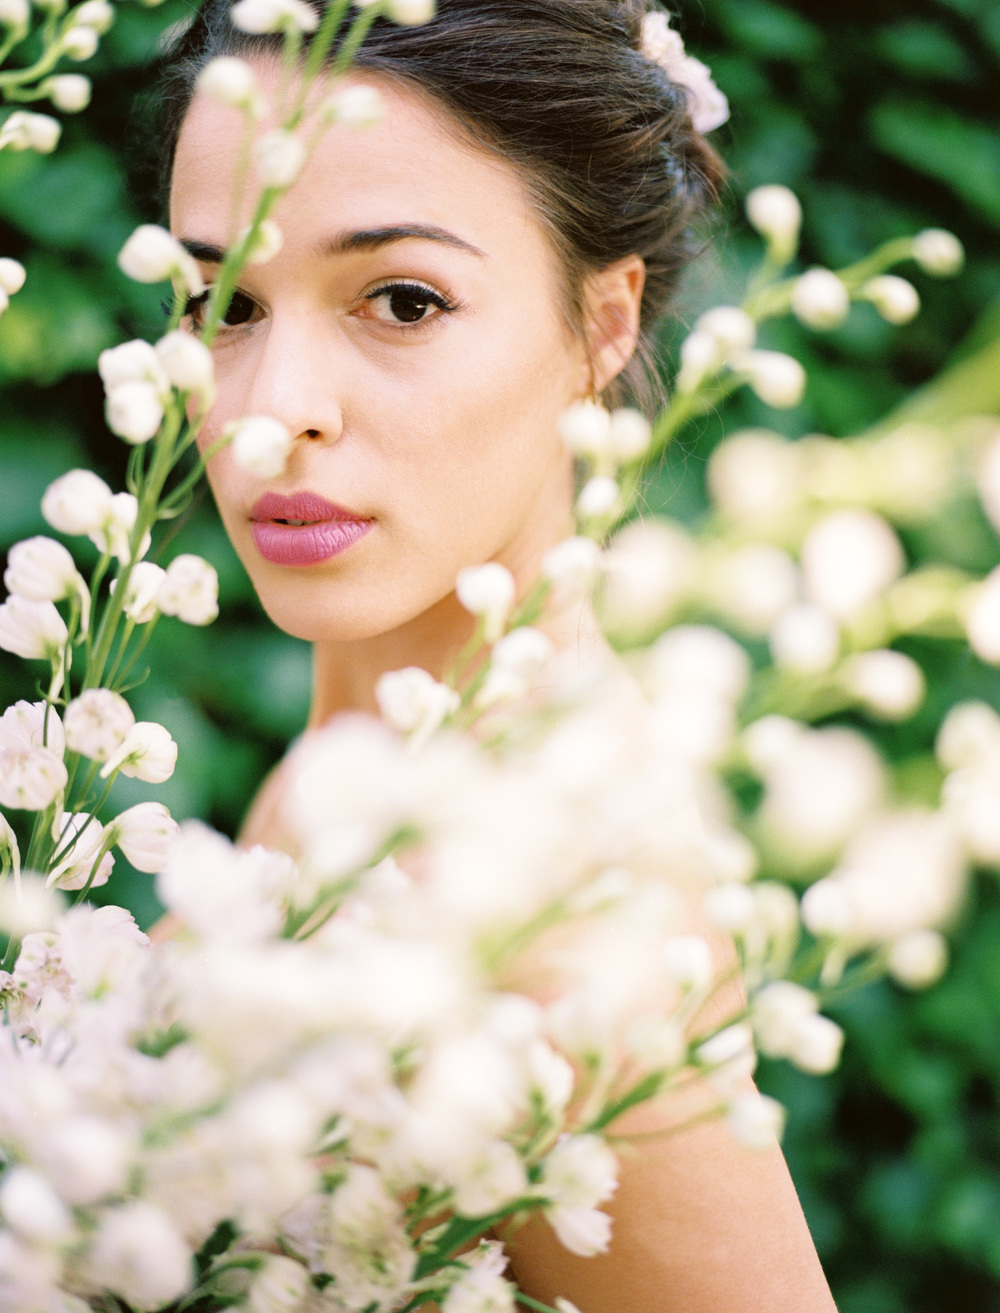 elegant texas garden wedding hair and makeup inspiration from The Wildflowers | follow us on instagram: @ thewildflowers.events